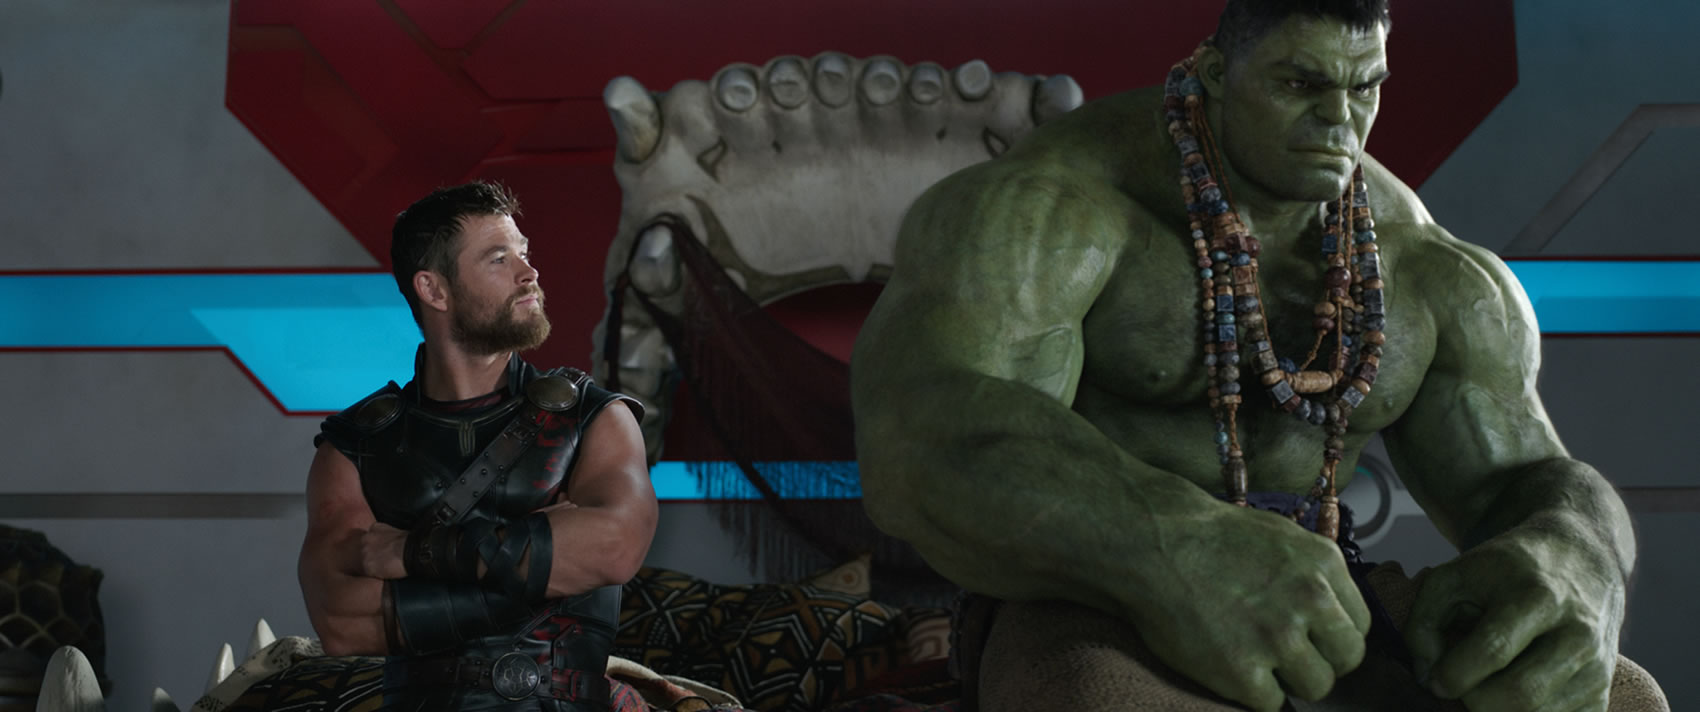 2017 Year in Review - Marvel Studios' THOR: RAGNAROK..Asgard ©Marvel Studios 2017